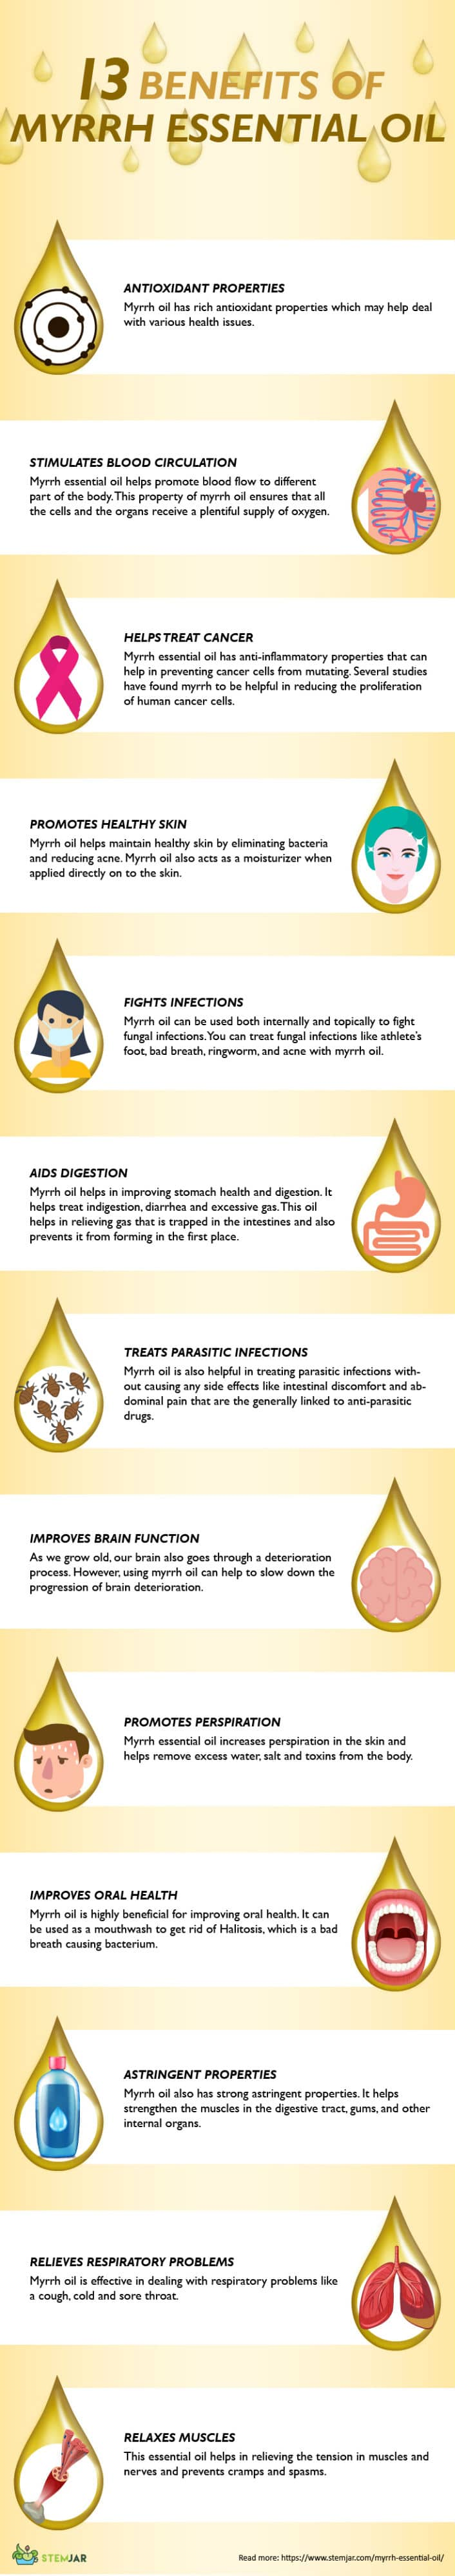 Myrrh essential oil benefits infographic